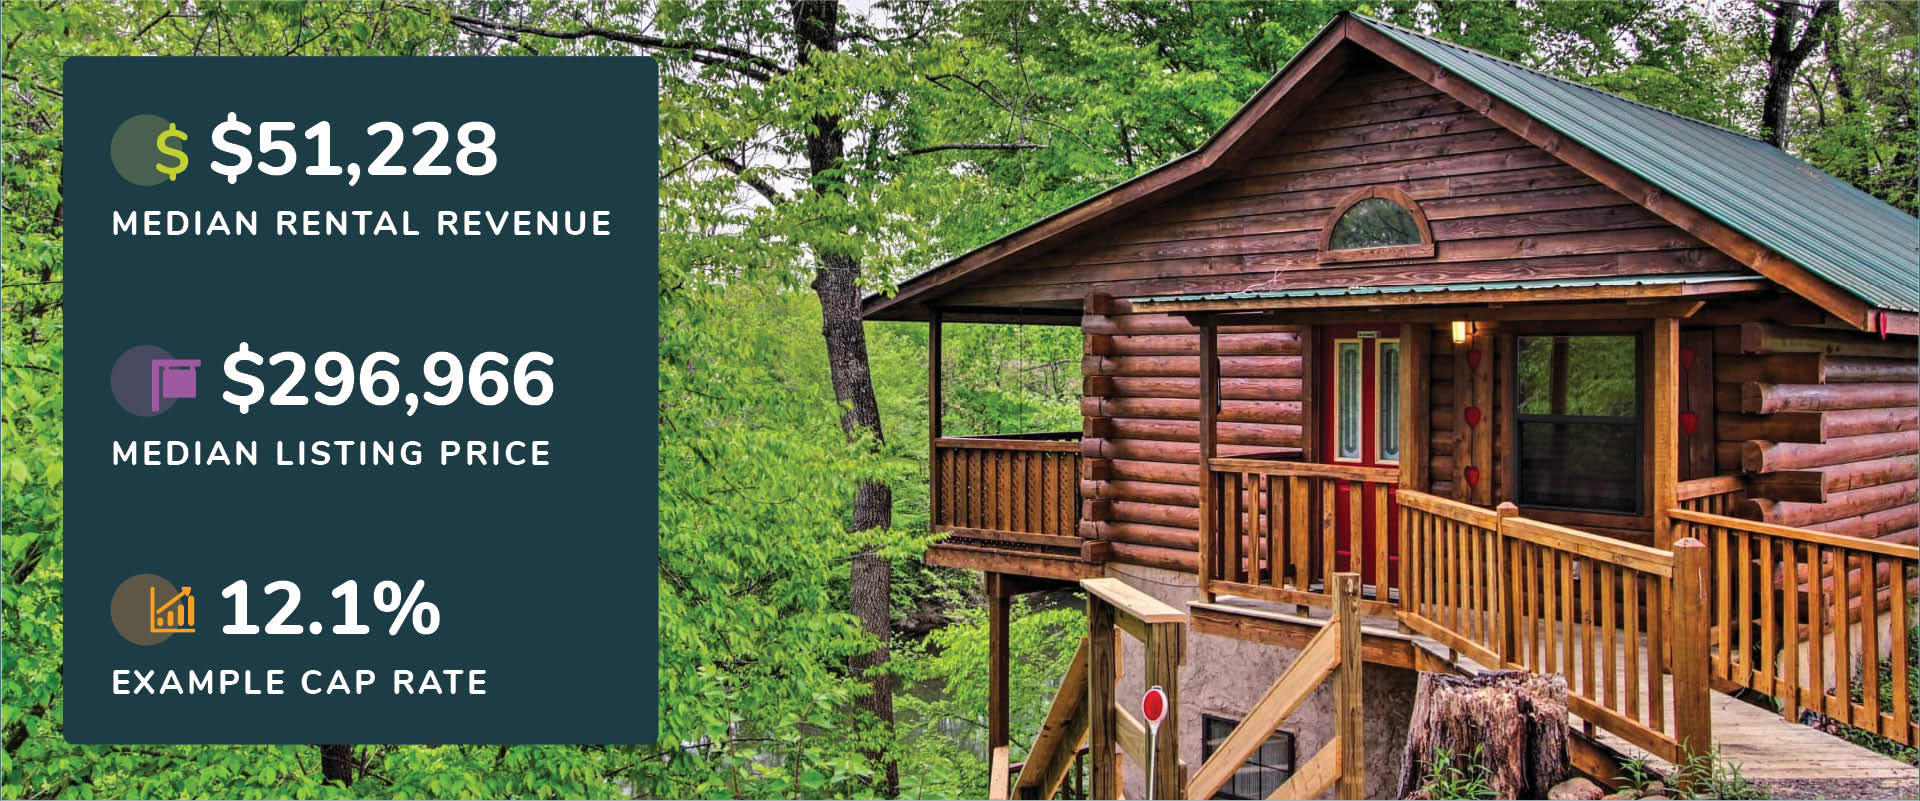 Graphic showing Sevierville, Tennessee median rental revenue, listing price, and cap rate with a picture of a an elevated log cabin with wrap-around deck.